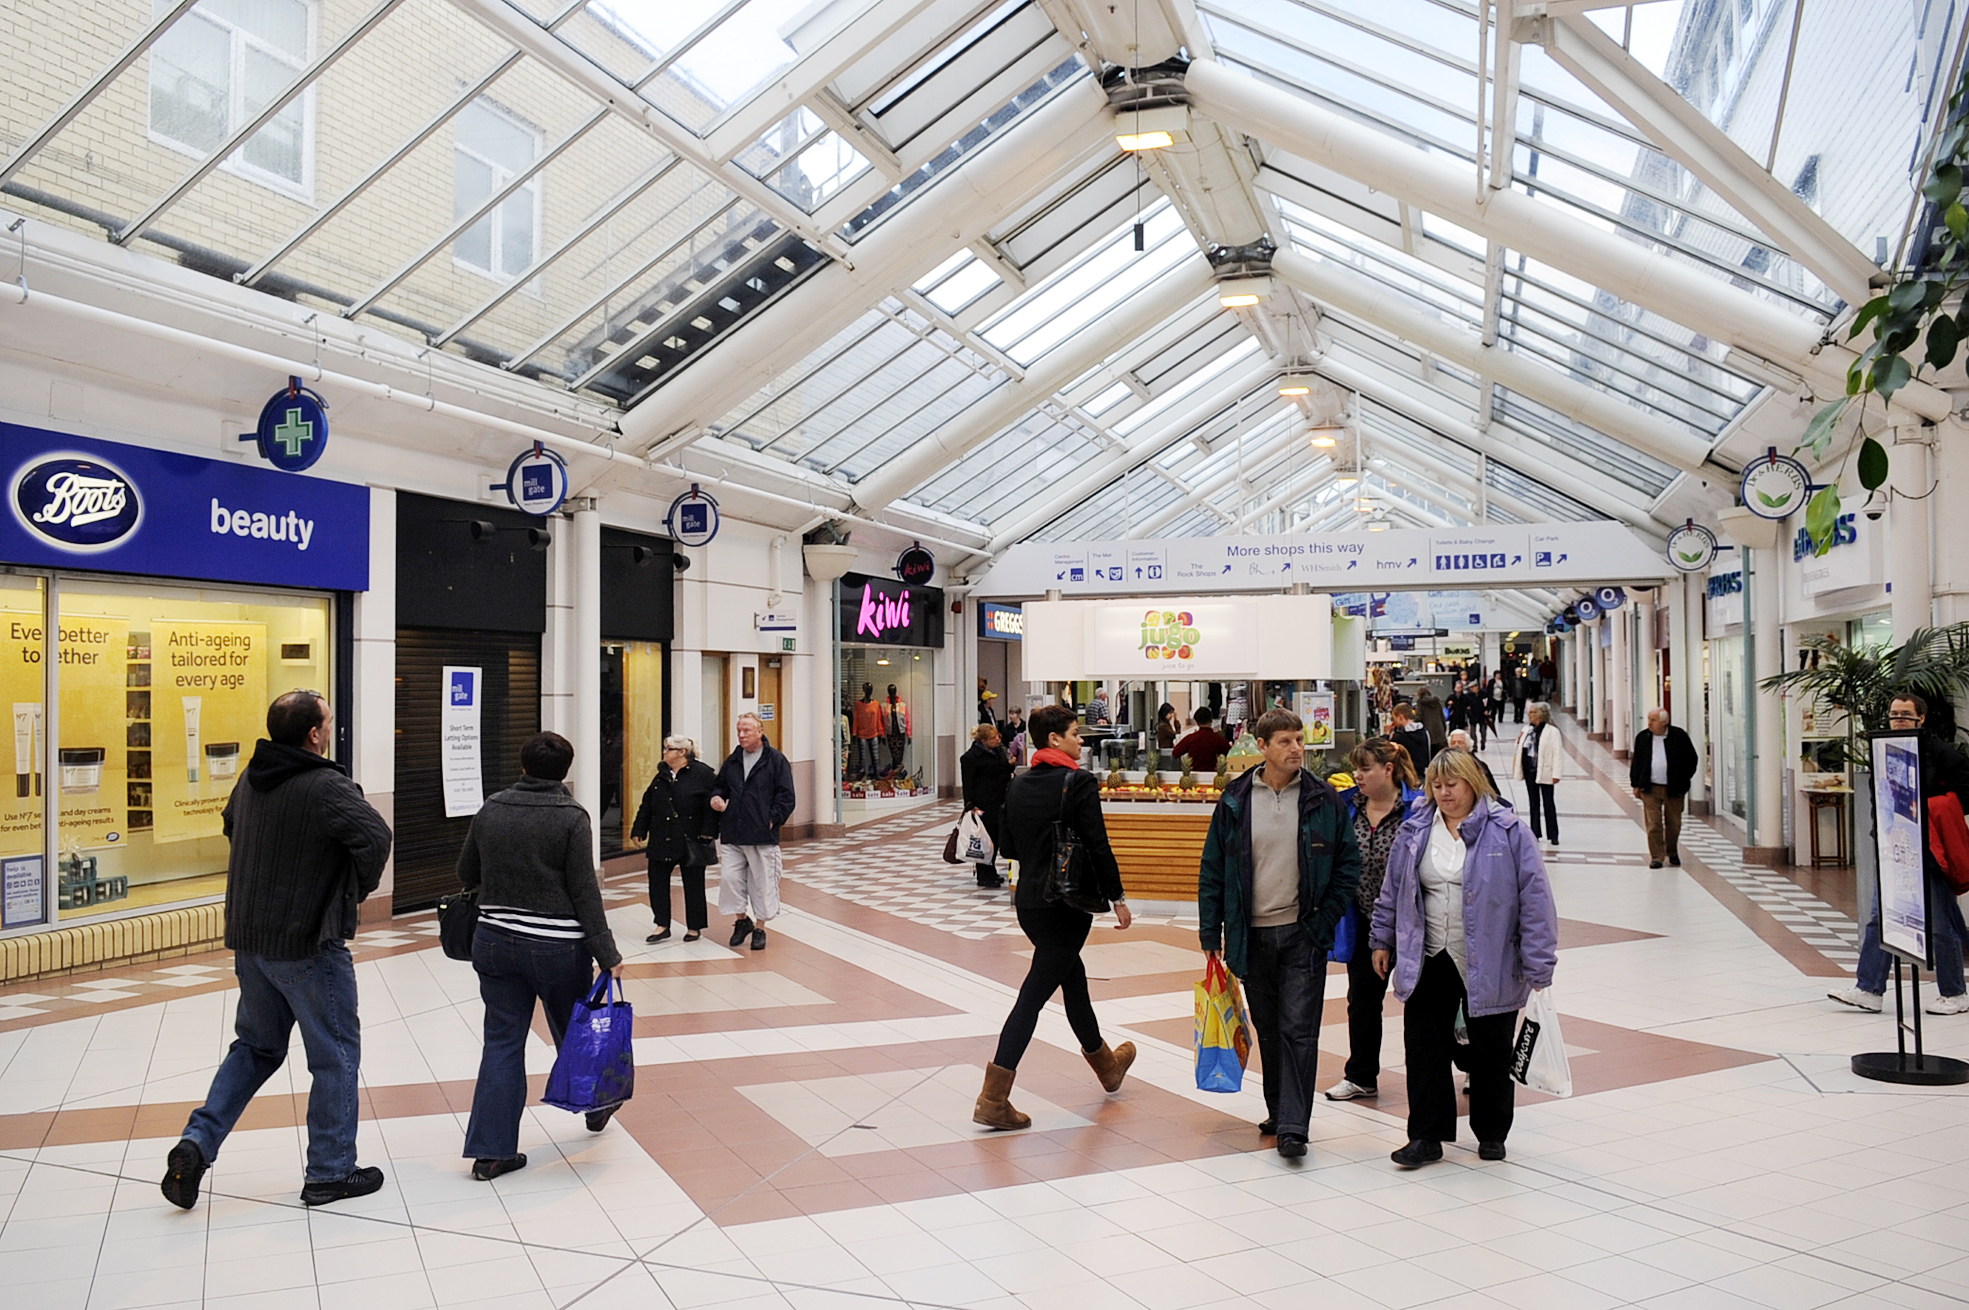 Mill Gate shopping centre sold for £52 million